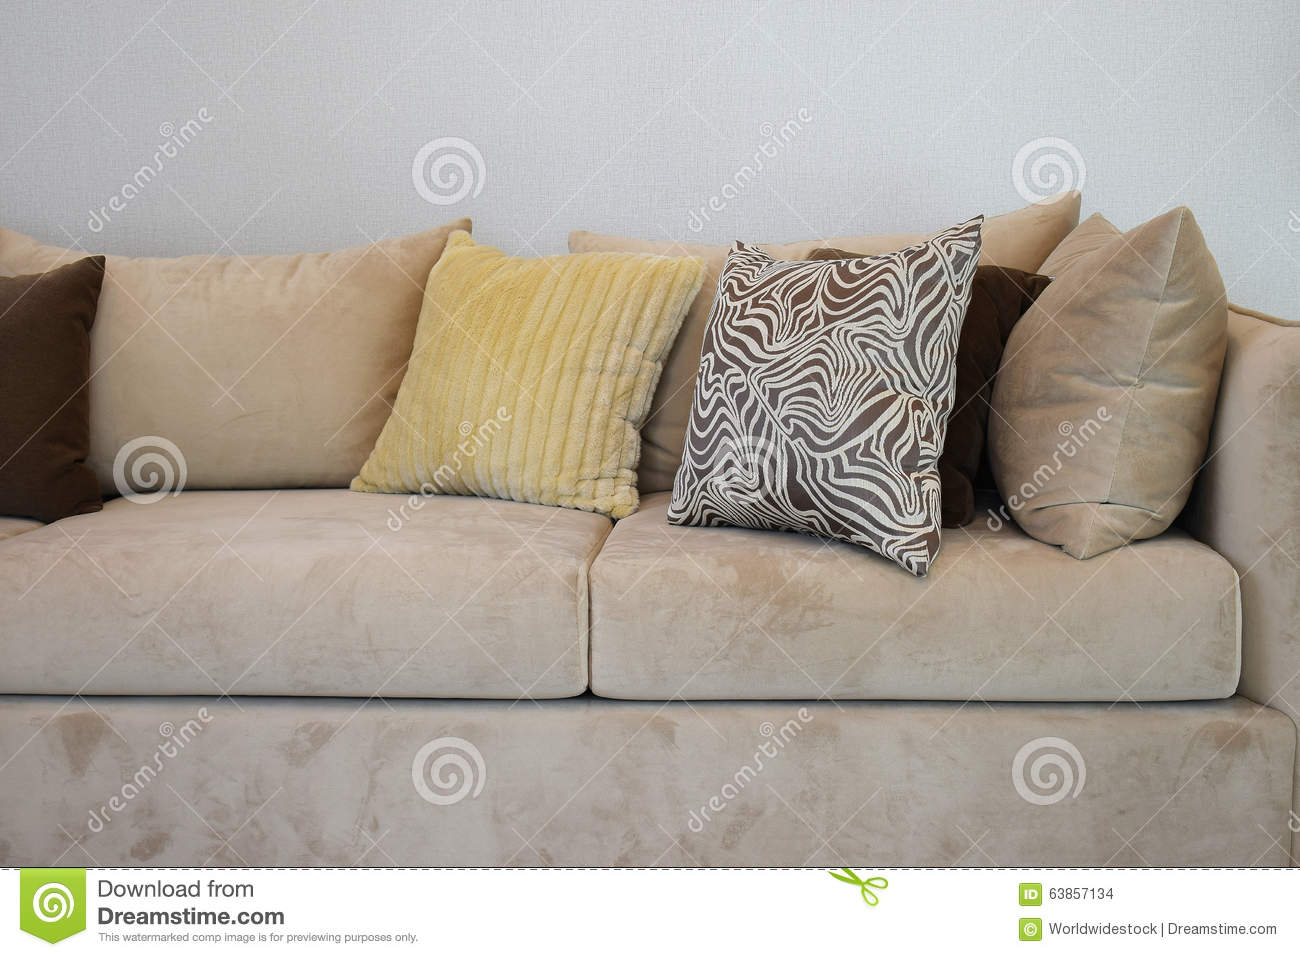 Sturdy Brown Tweed Sofa With Grey Patterned Pillows Stock Photo ...